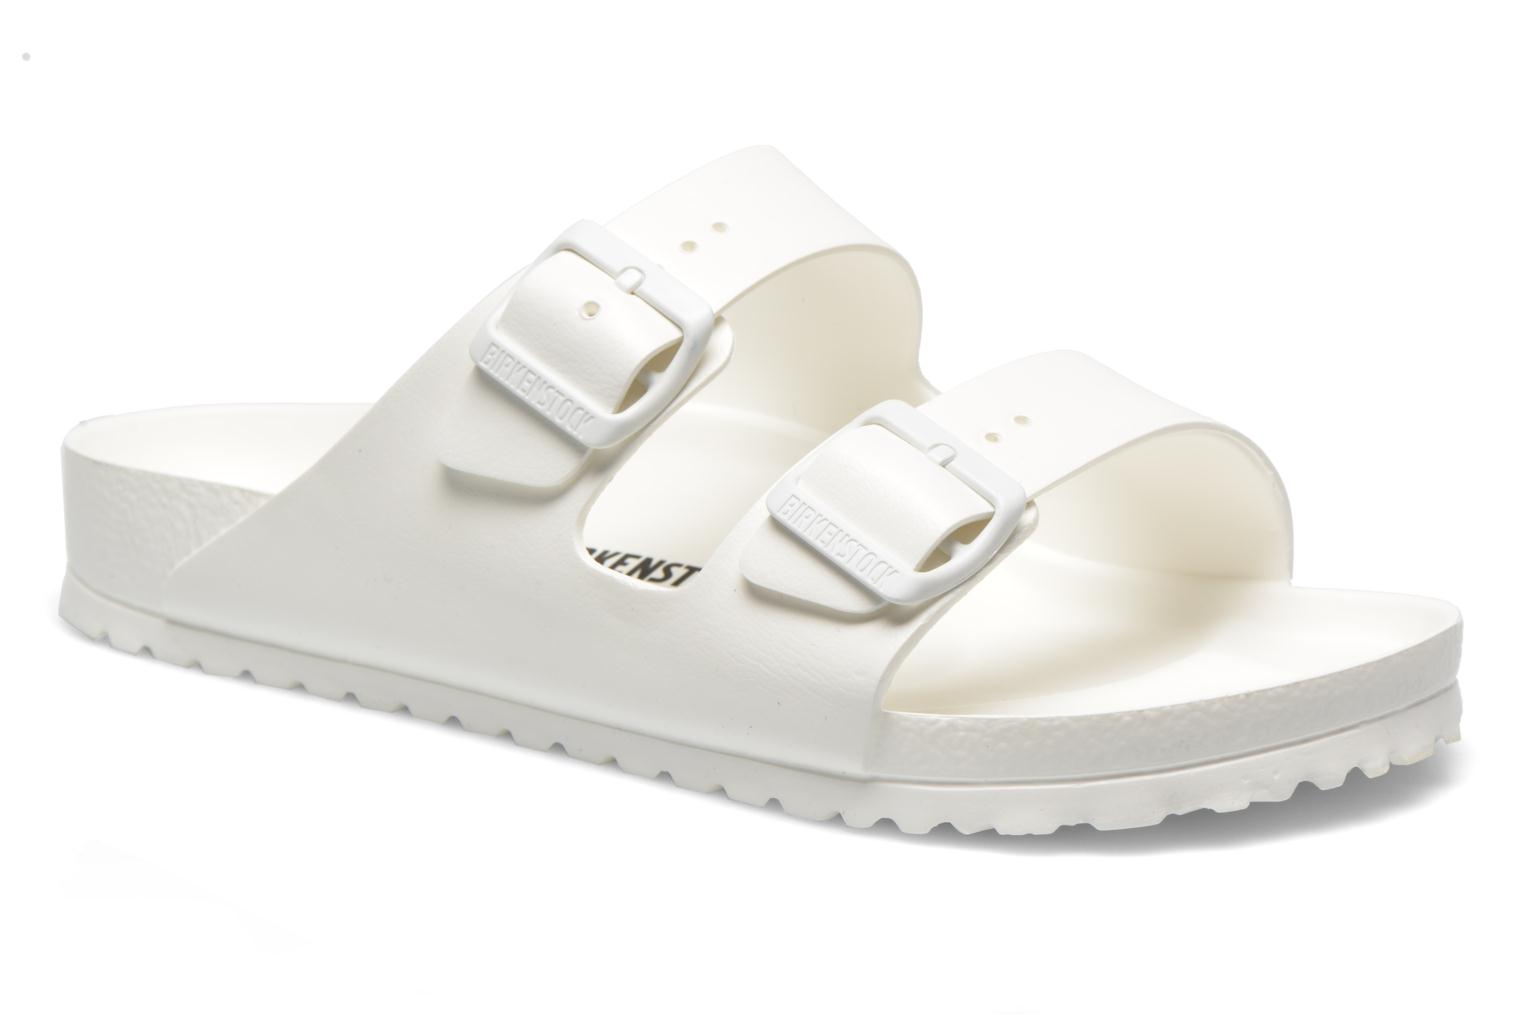 Arizona EVA M by Birkenstock